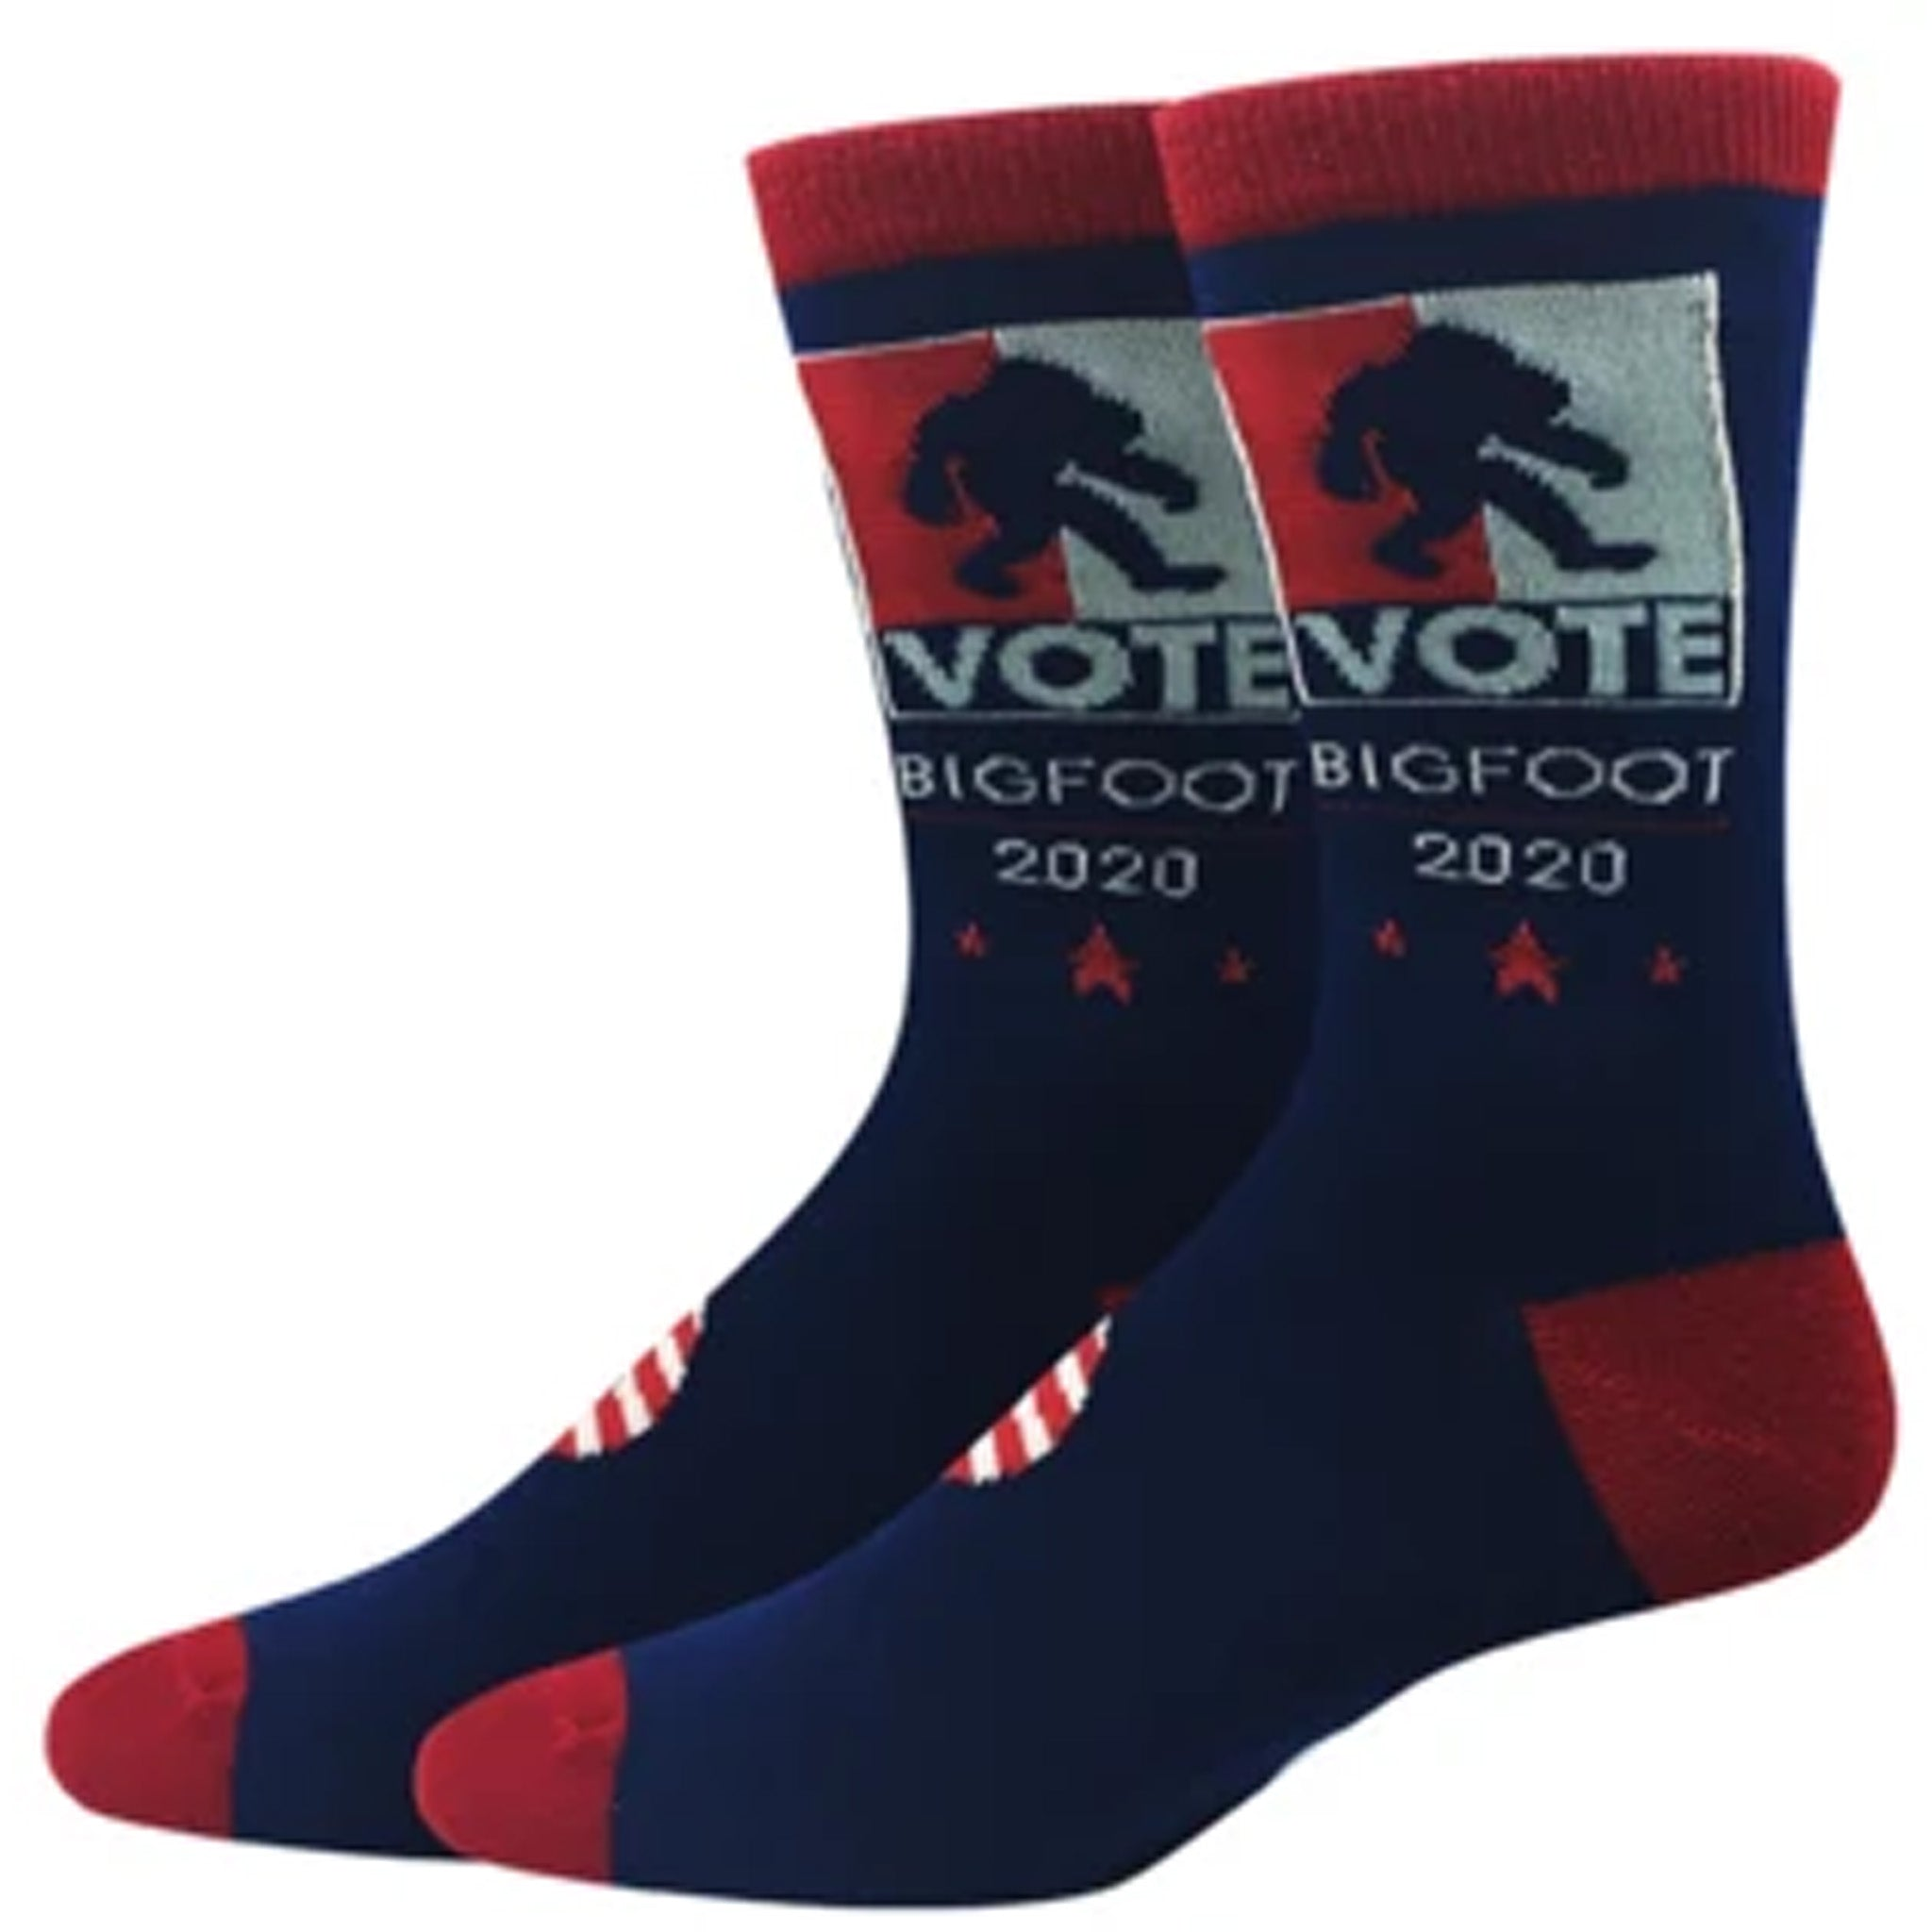 BIGFOOT VOTE 2020 SOCKS (LIMITED)